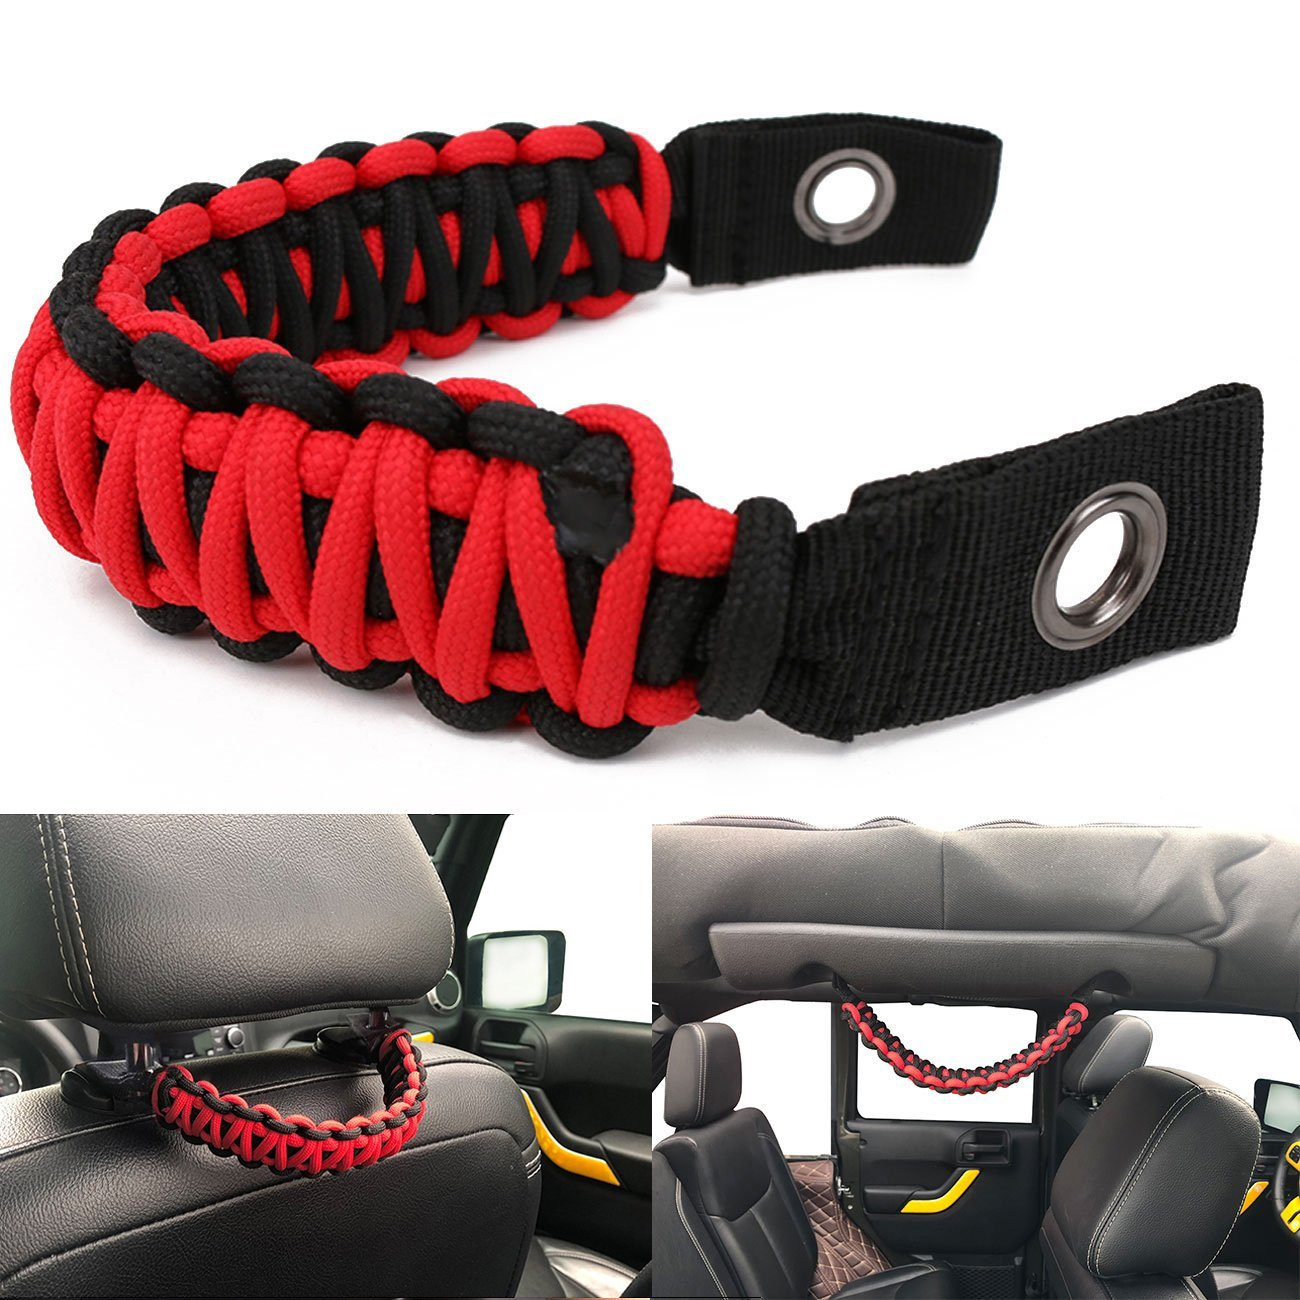 buyinhouse Grab Handle for Jeep Wrangler JK TJ Rear Seat Grab Handles & Safety Grab Handles (Red & Black) Jeep Wrangler JK TJ Land Cruiser FJ